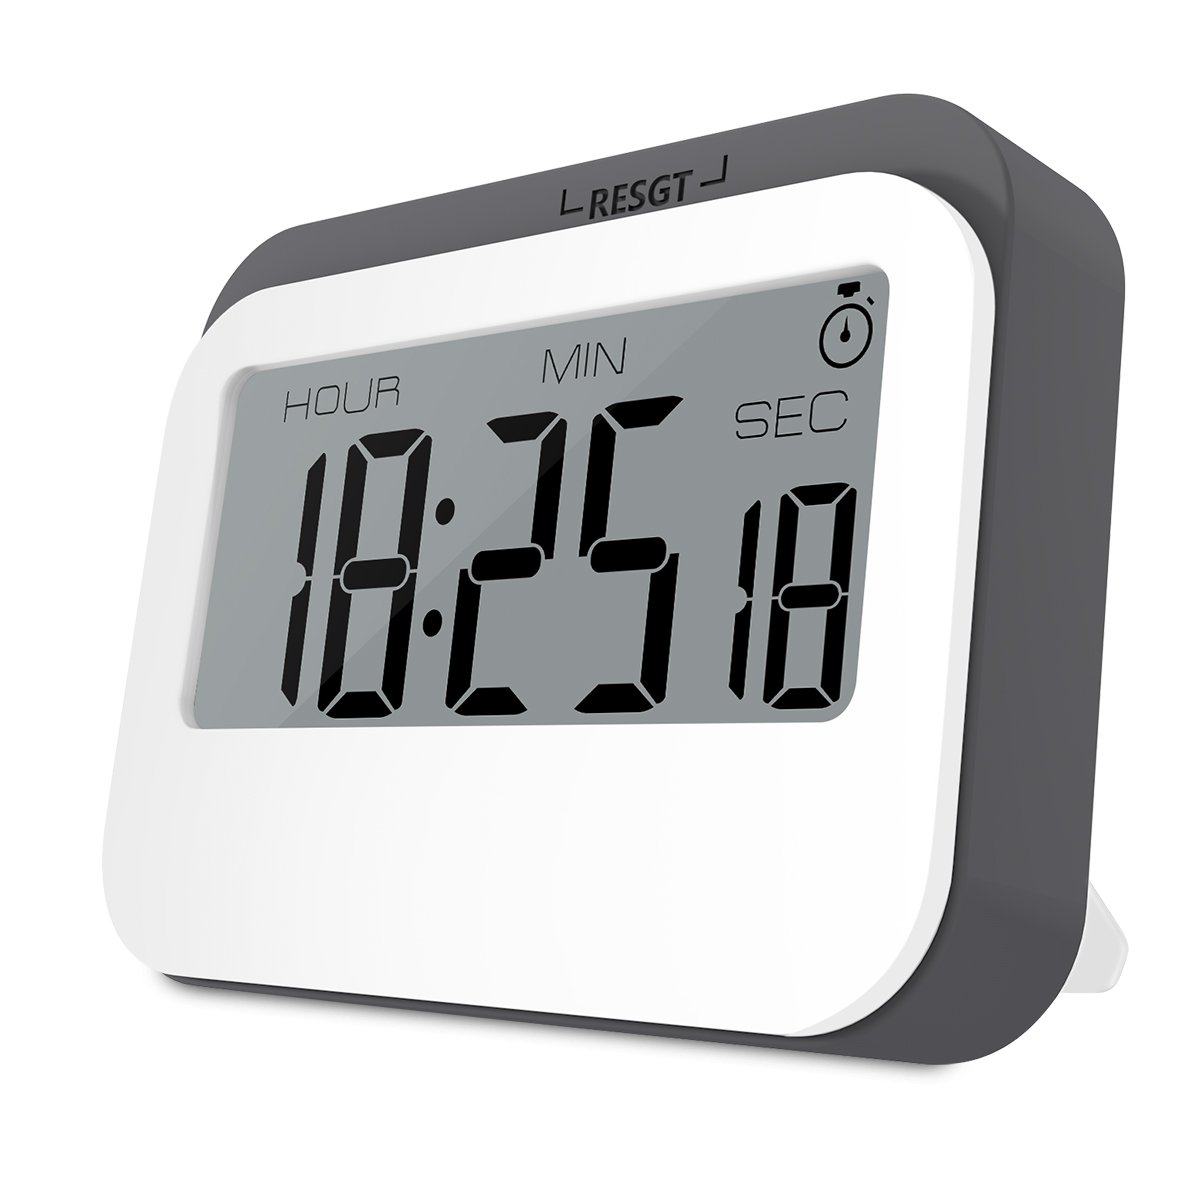 Cheap 2 5 Digits Countdown Timer, find 2 5 Digits Countdown